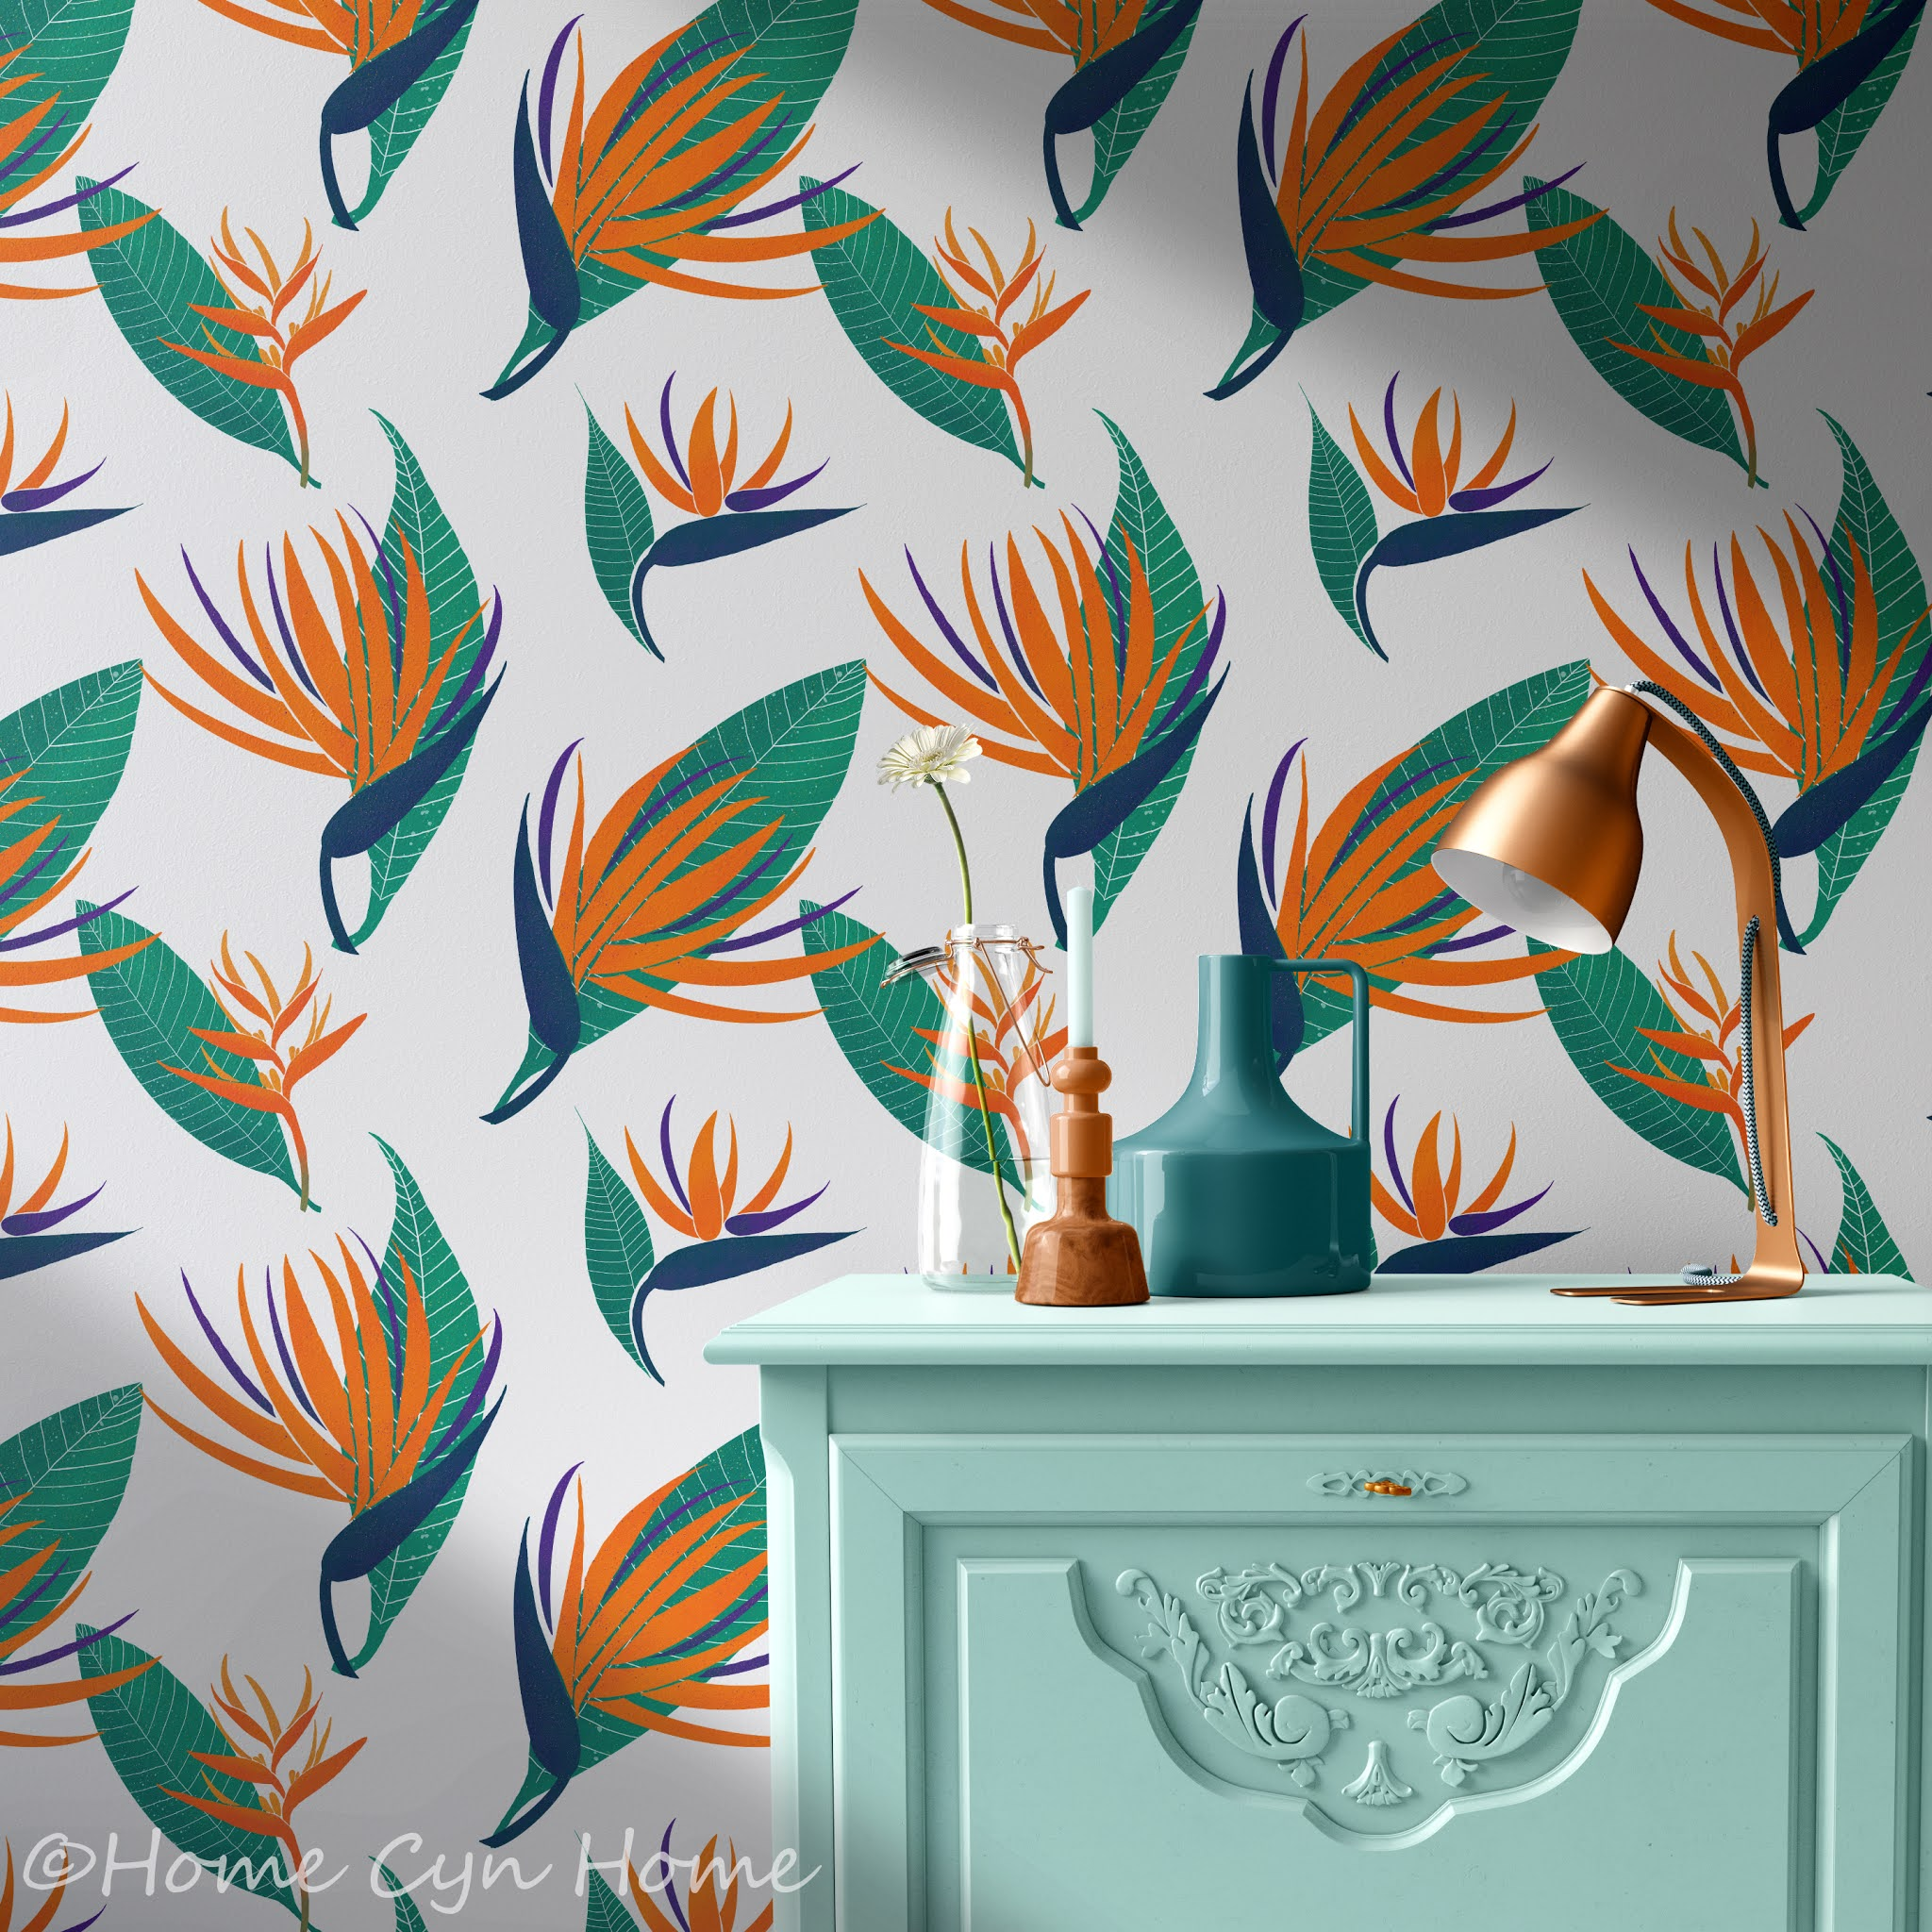 bird of paradise and tropical leaves on a wallpaper pattern